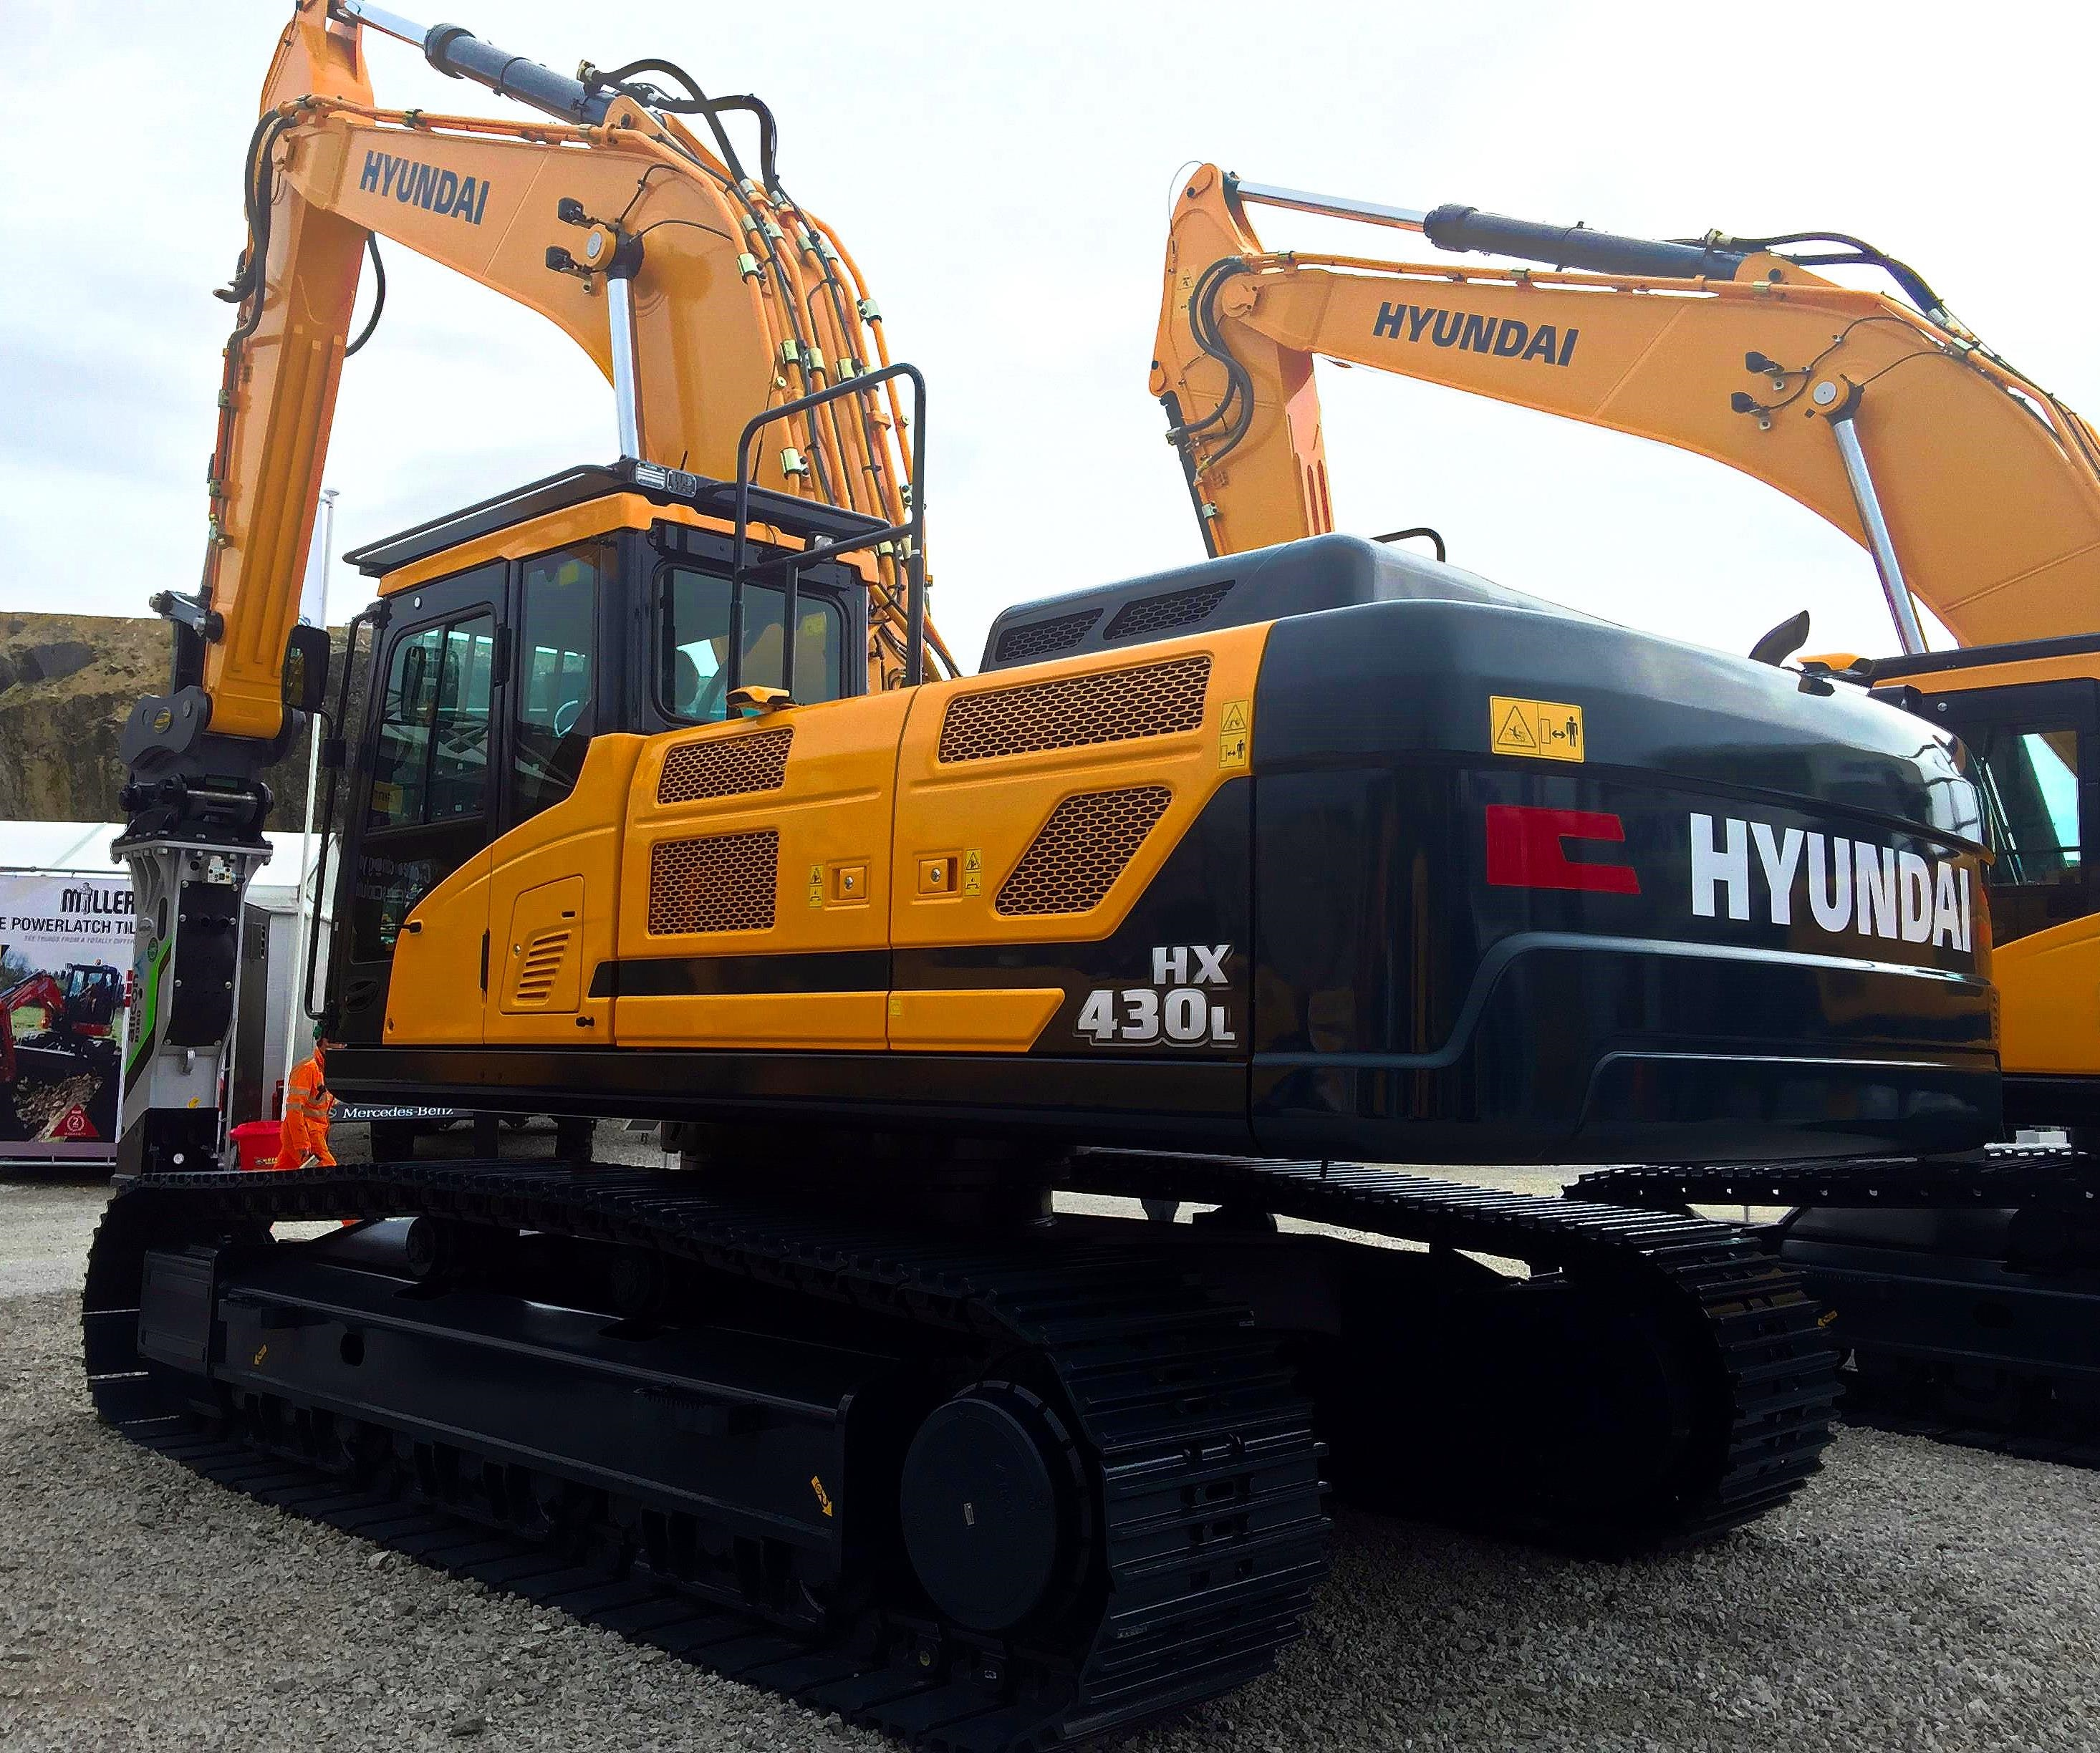 hyundai introduce the brand new hx430 l crawler excavator at hillhead cea construction. Black Bedroom Furniture Sets. Home Design Ideas